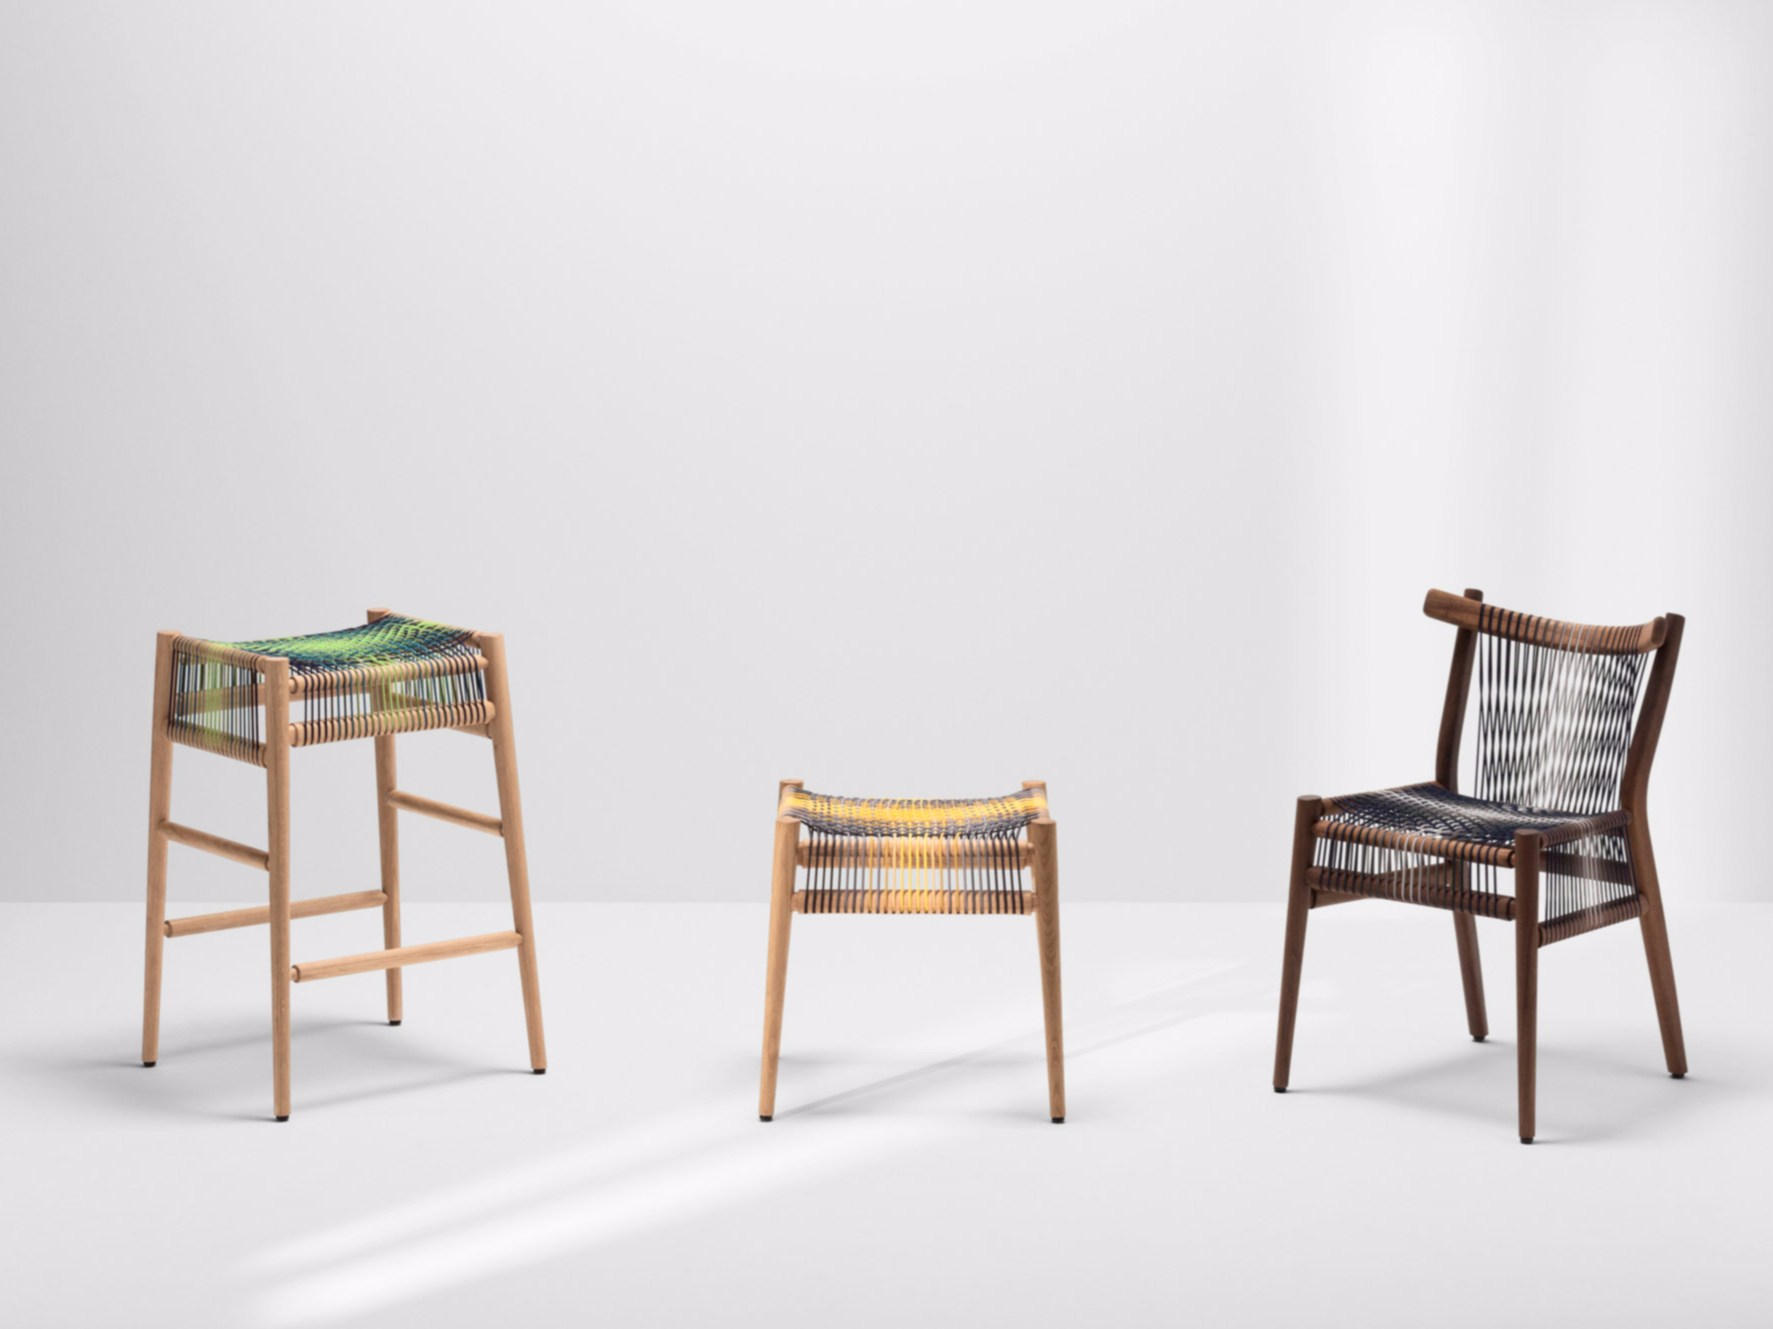 Beautiful LOOM BY PTOLEMY MANN | Chair By H Furniture Design Hierve, Ptolemy Mann